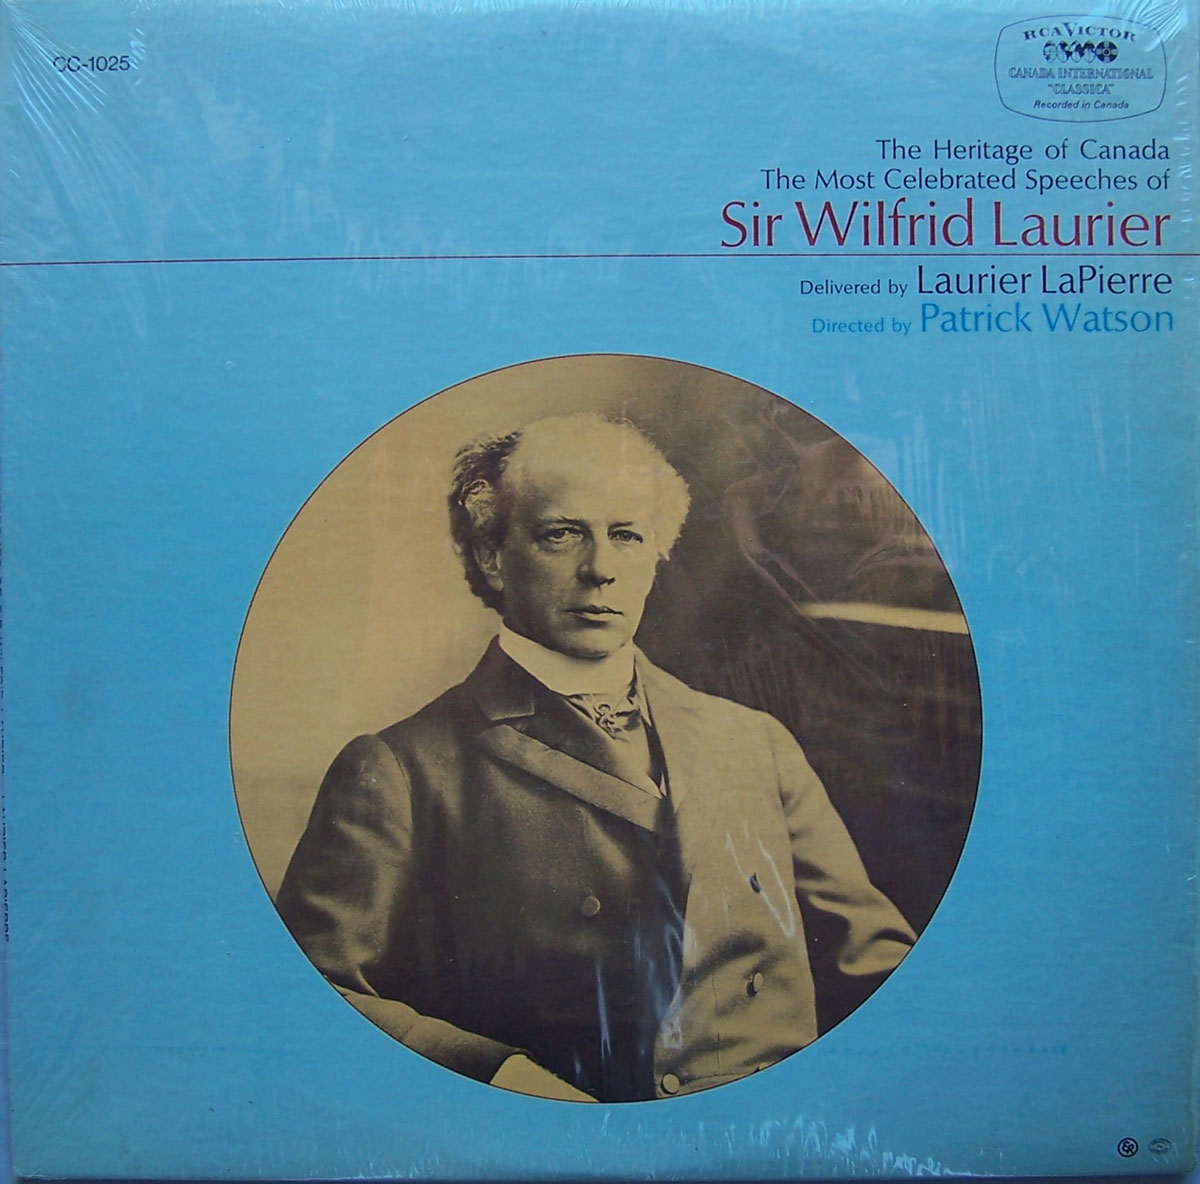 The Heritage of Canada: The Most Celebrated Speeches of Sir Wilfrid Laurier, 33-rpm RCA Victor recording, 1968. Produced by journalists Laurier Lapierre and Patrick Watson of the CBC. Canadian Museum of History, ACQ 2012.17, temporary no. 342.3. Gift of Serge Joyal. Photo: Xavier Gélinas, 342.3